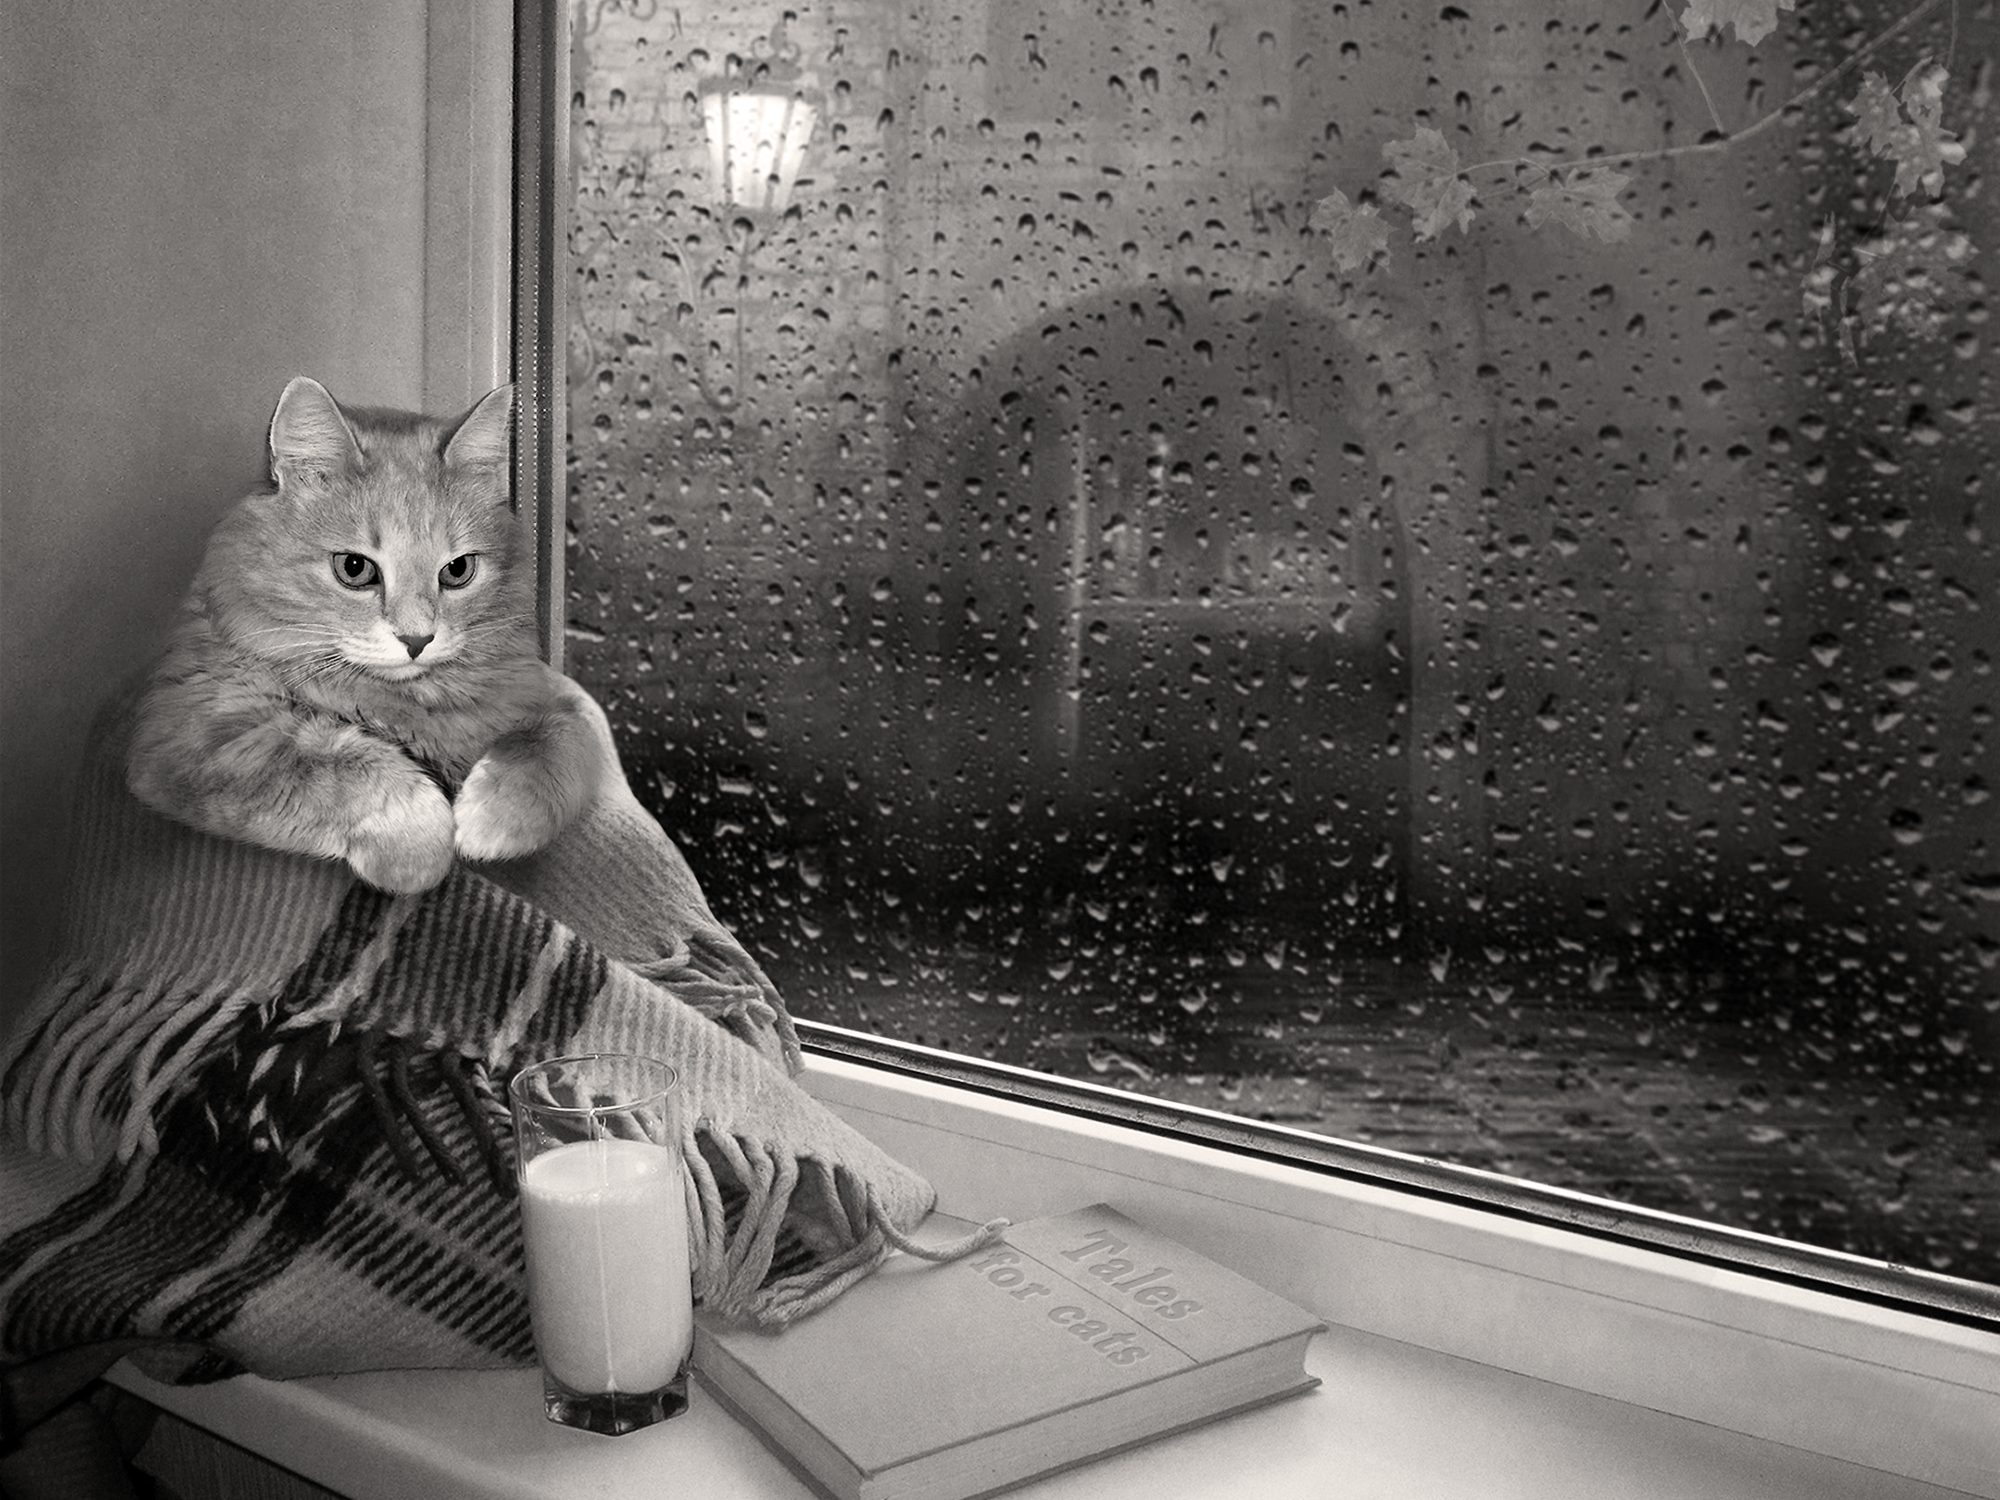 By a rainy day window, a cat sits wrapped in a blanket and staring at nothing., apparently not being productive.